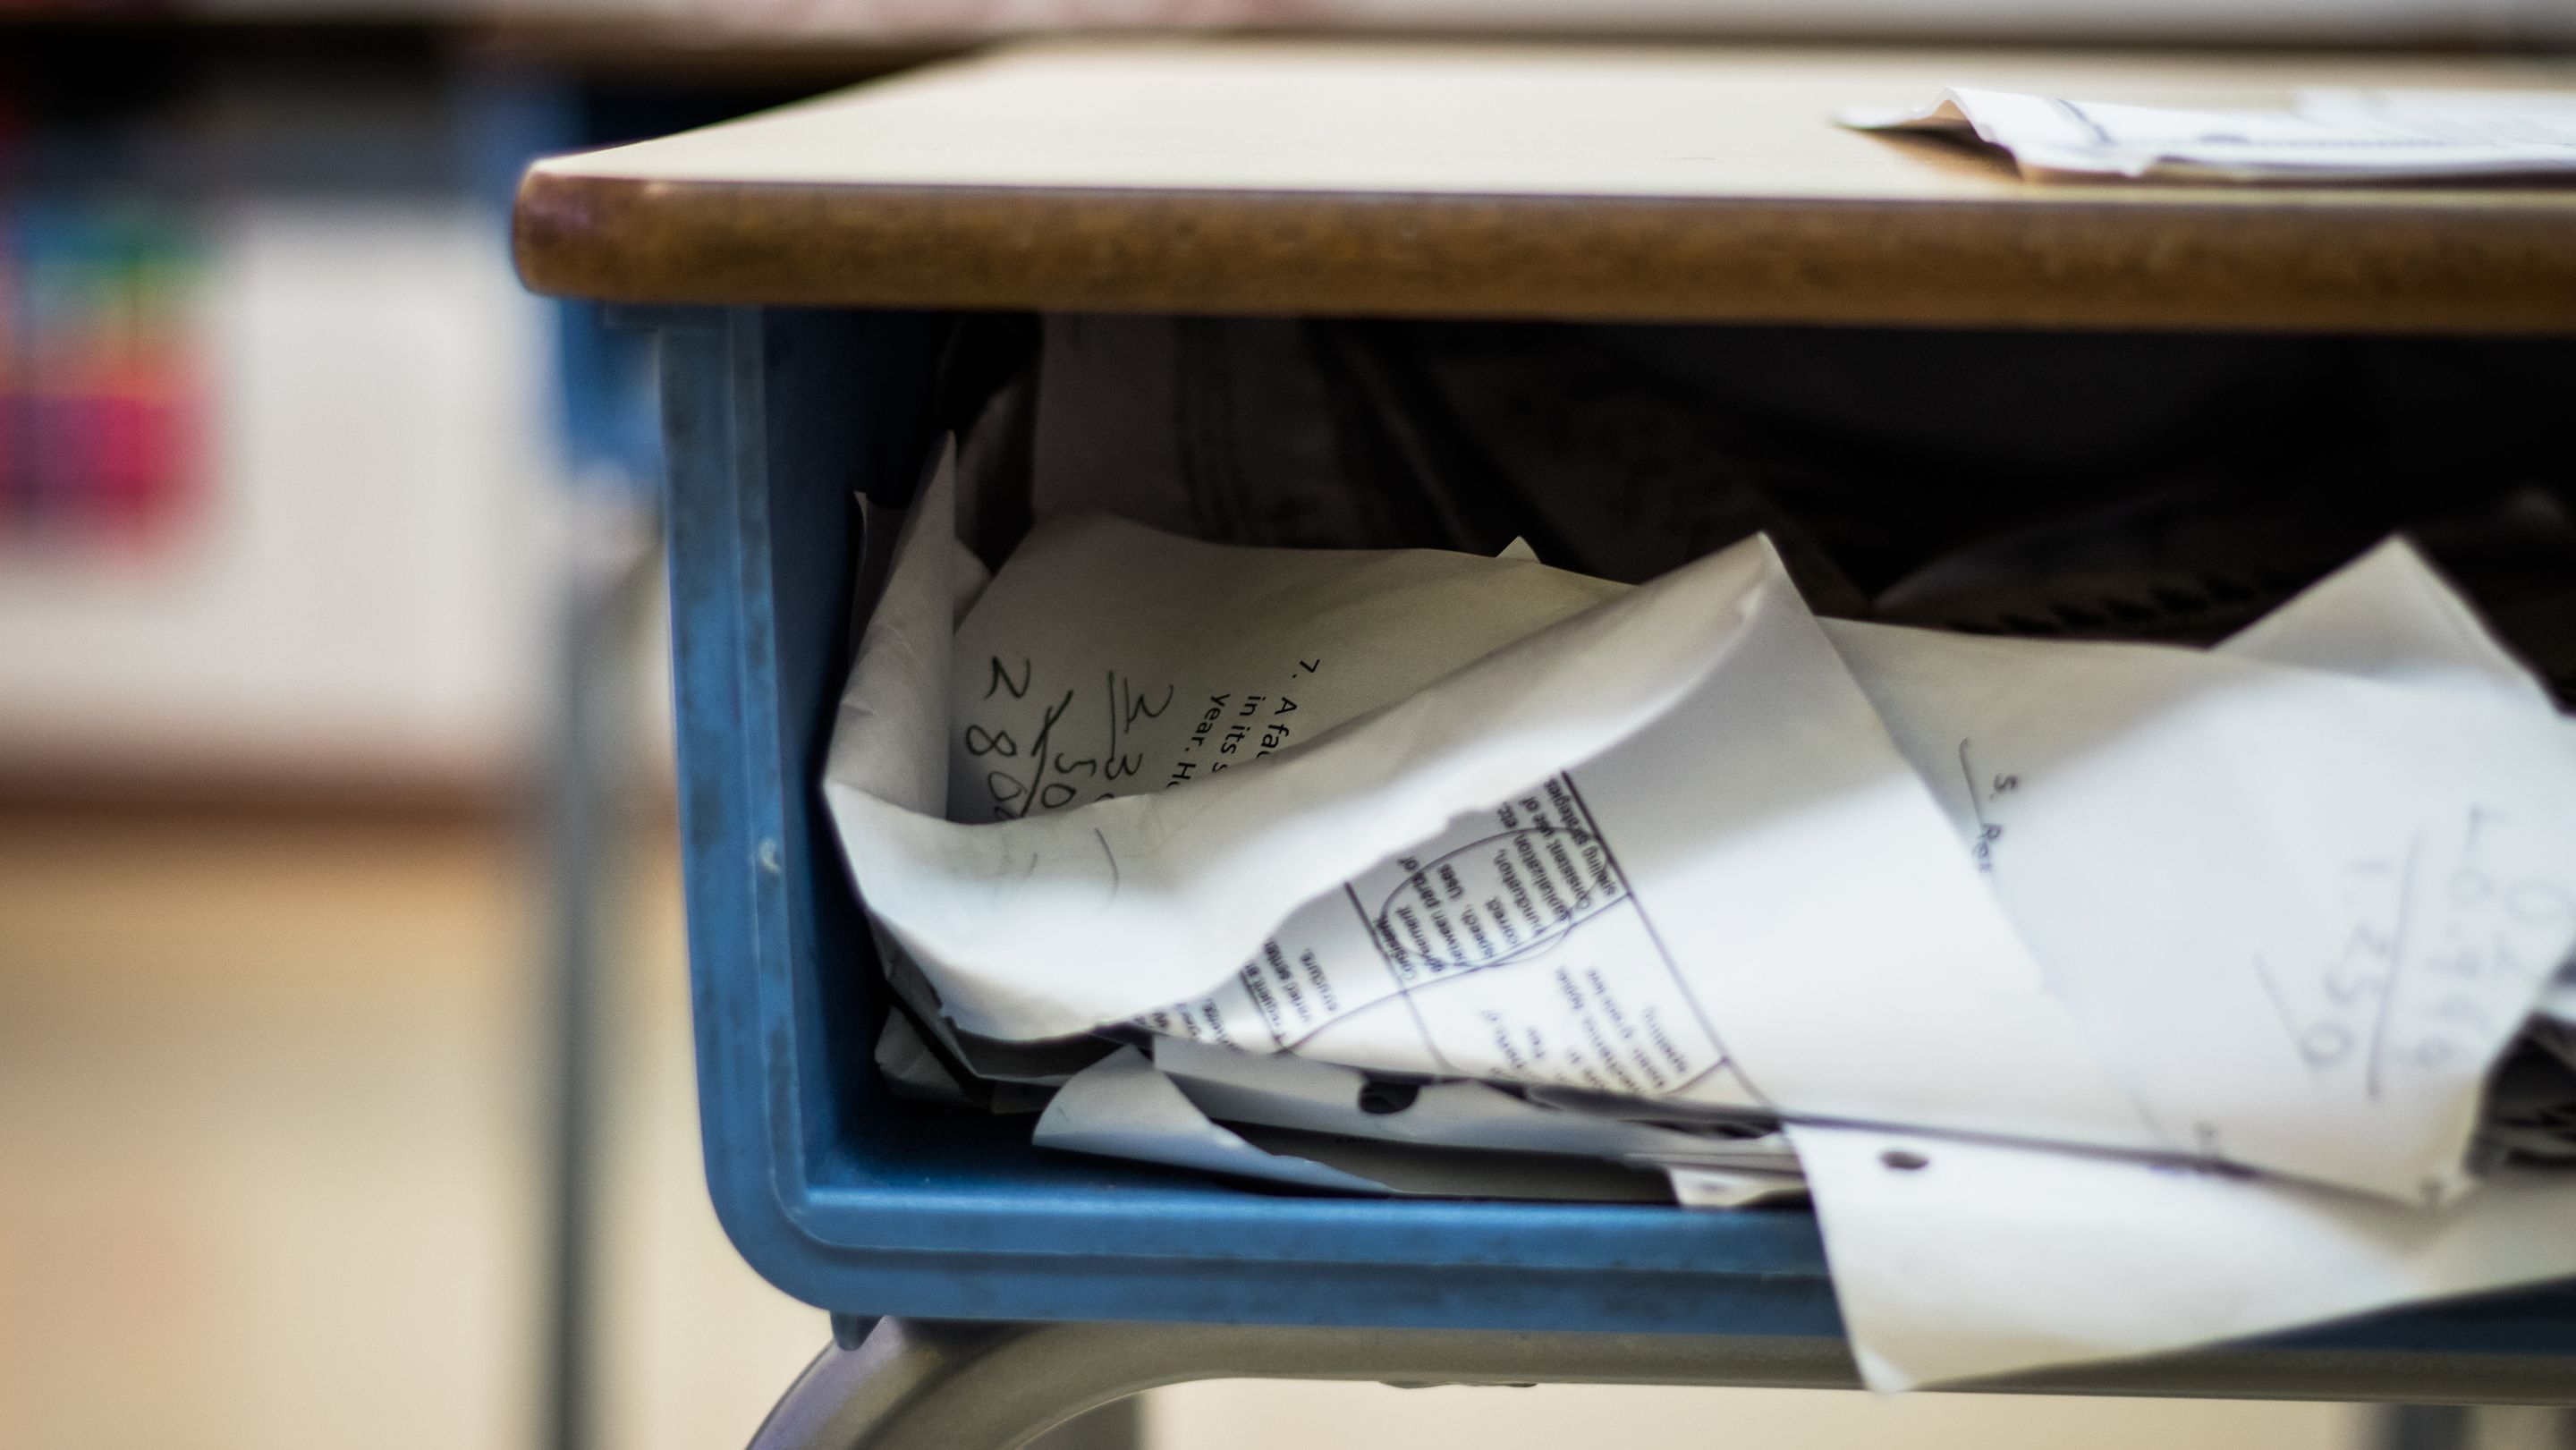 A messy school desk with papers spilling out of it